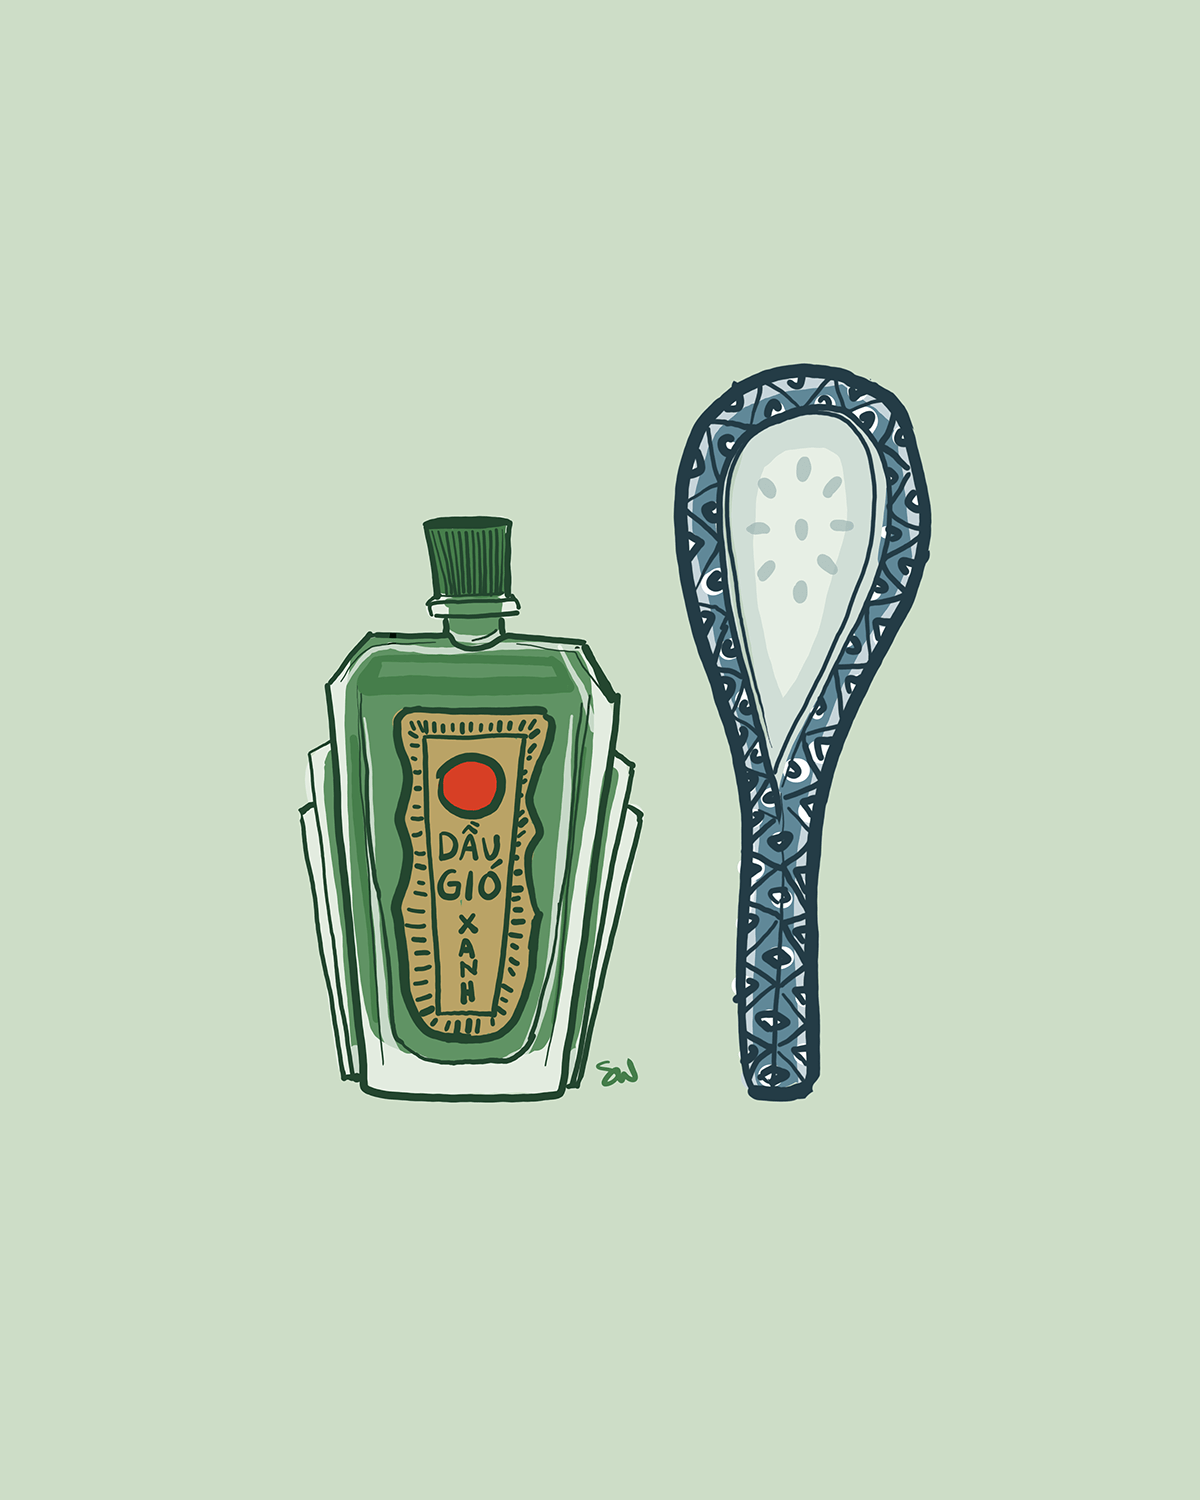 Image of a bottle of menthol oil and a ceramic spoon next to it